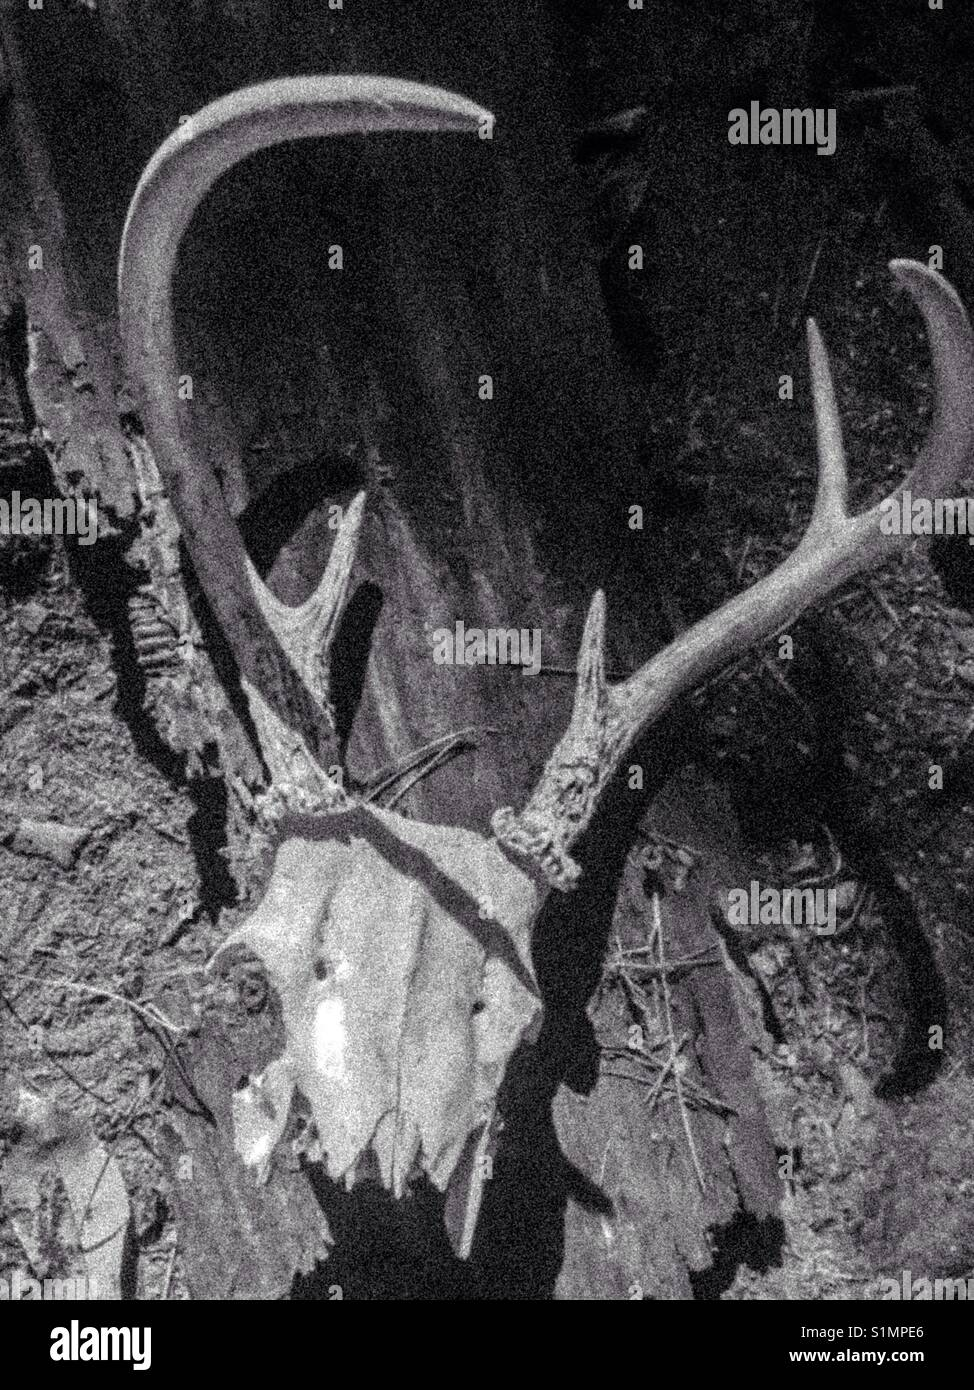 Grainy black and white photo of whitetail skull - Stock Image